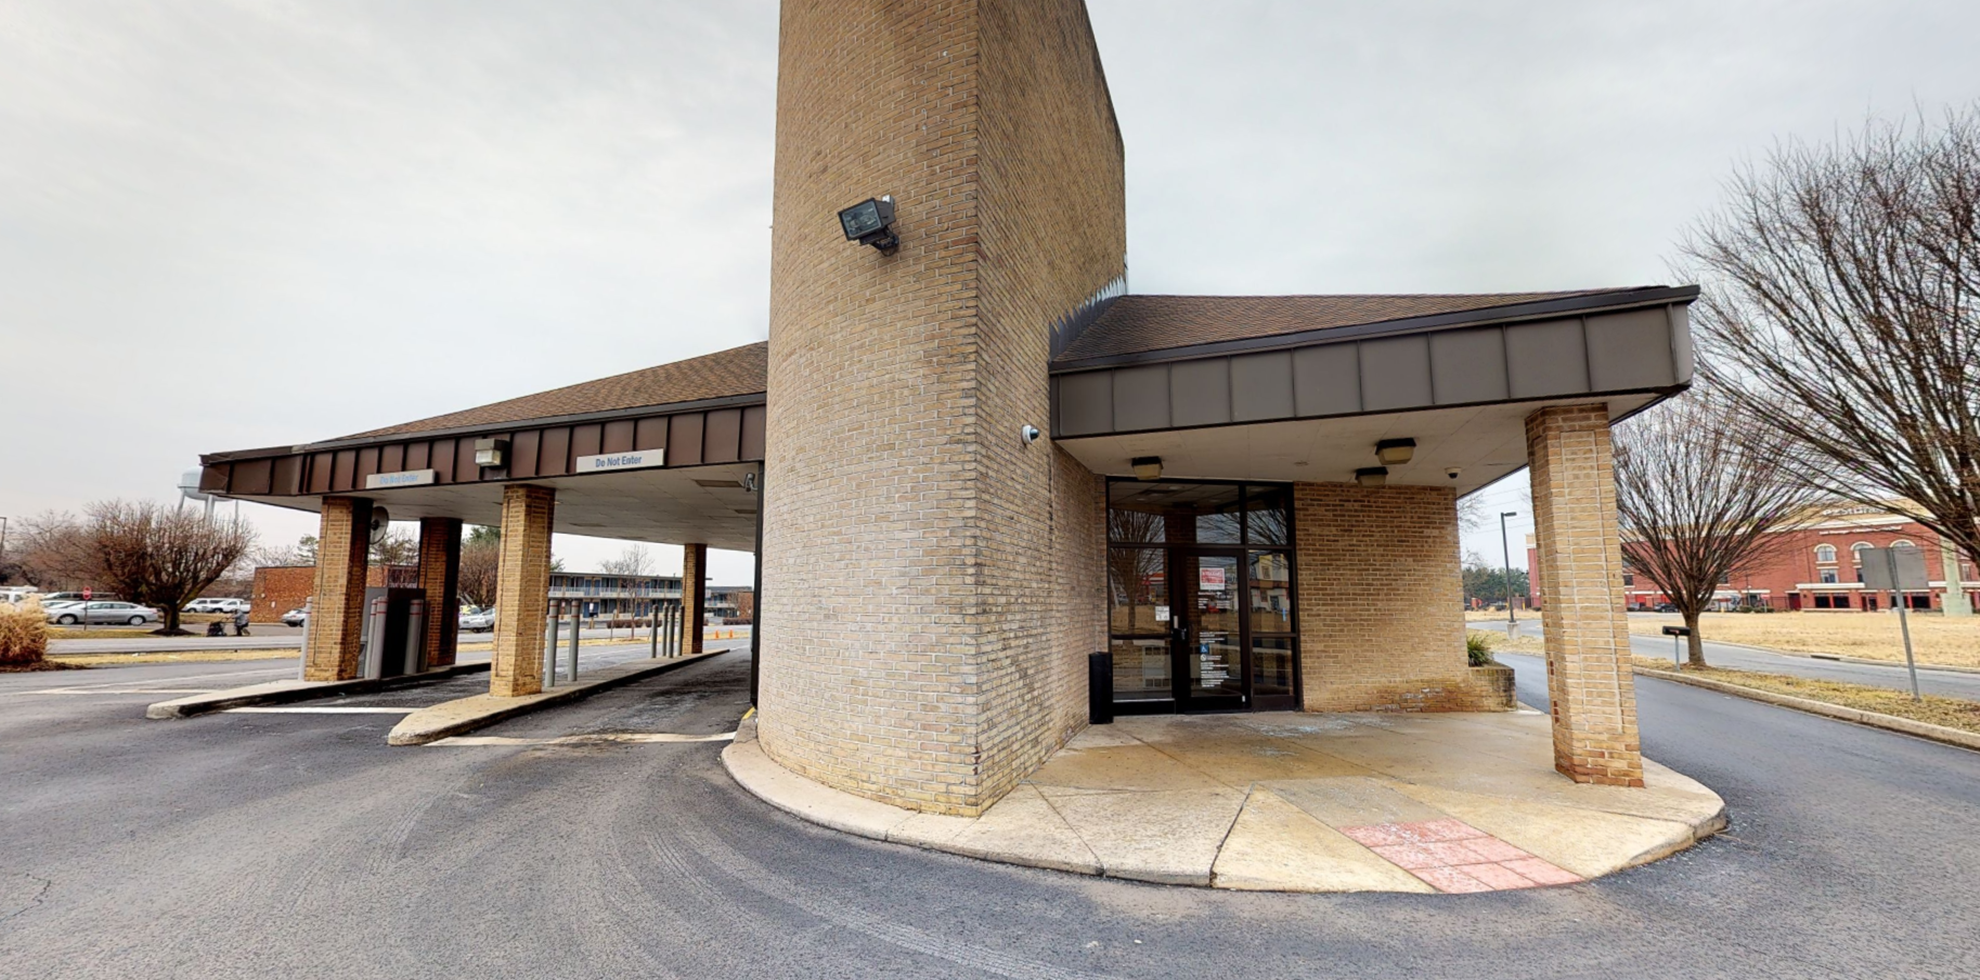 Bank of America financial center with drive-thru ATM   5704 Buckeystown Pike, Frederick, MD 21704